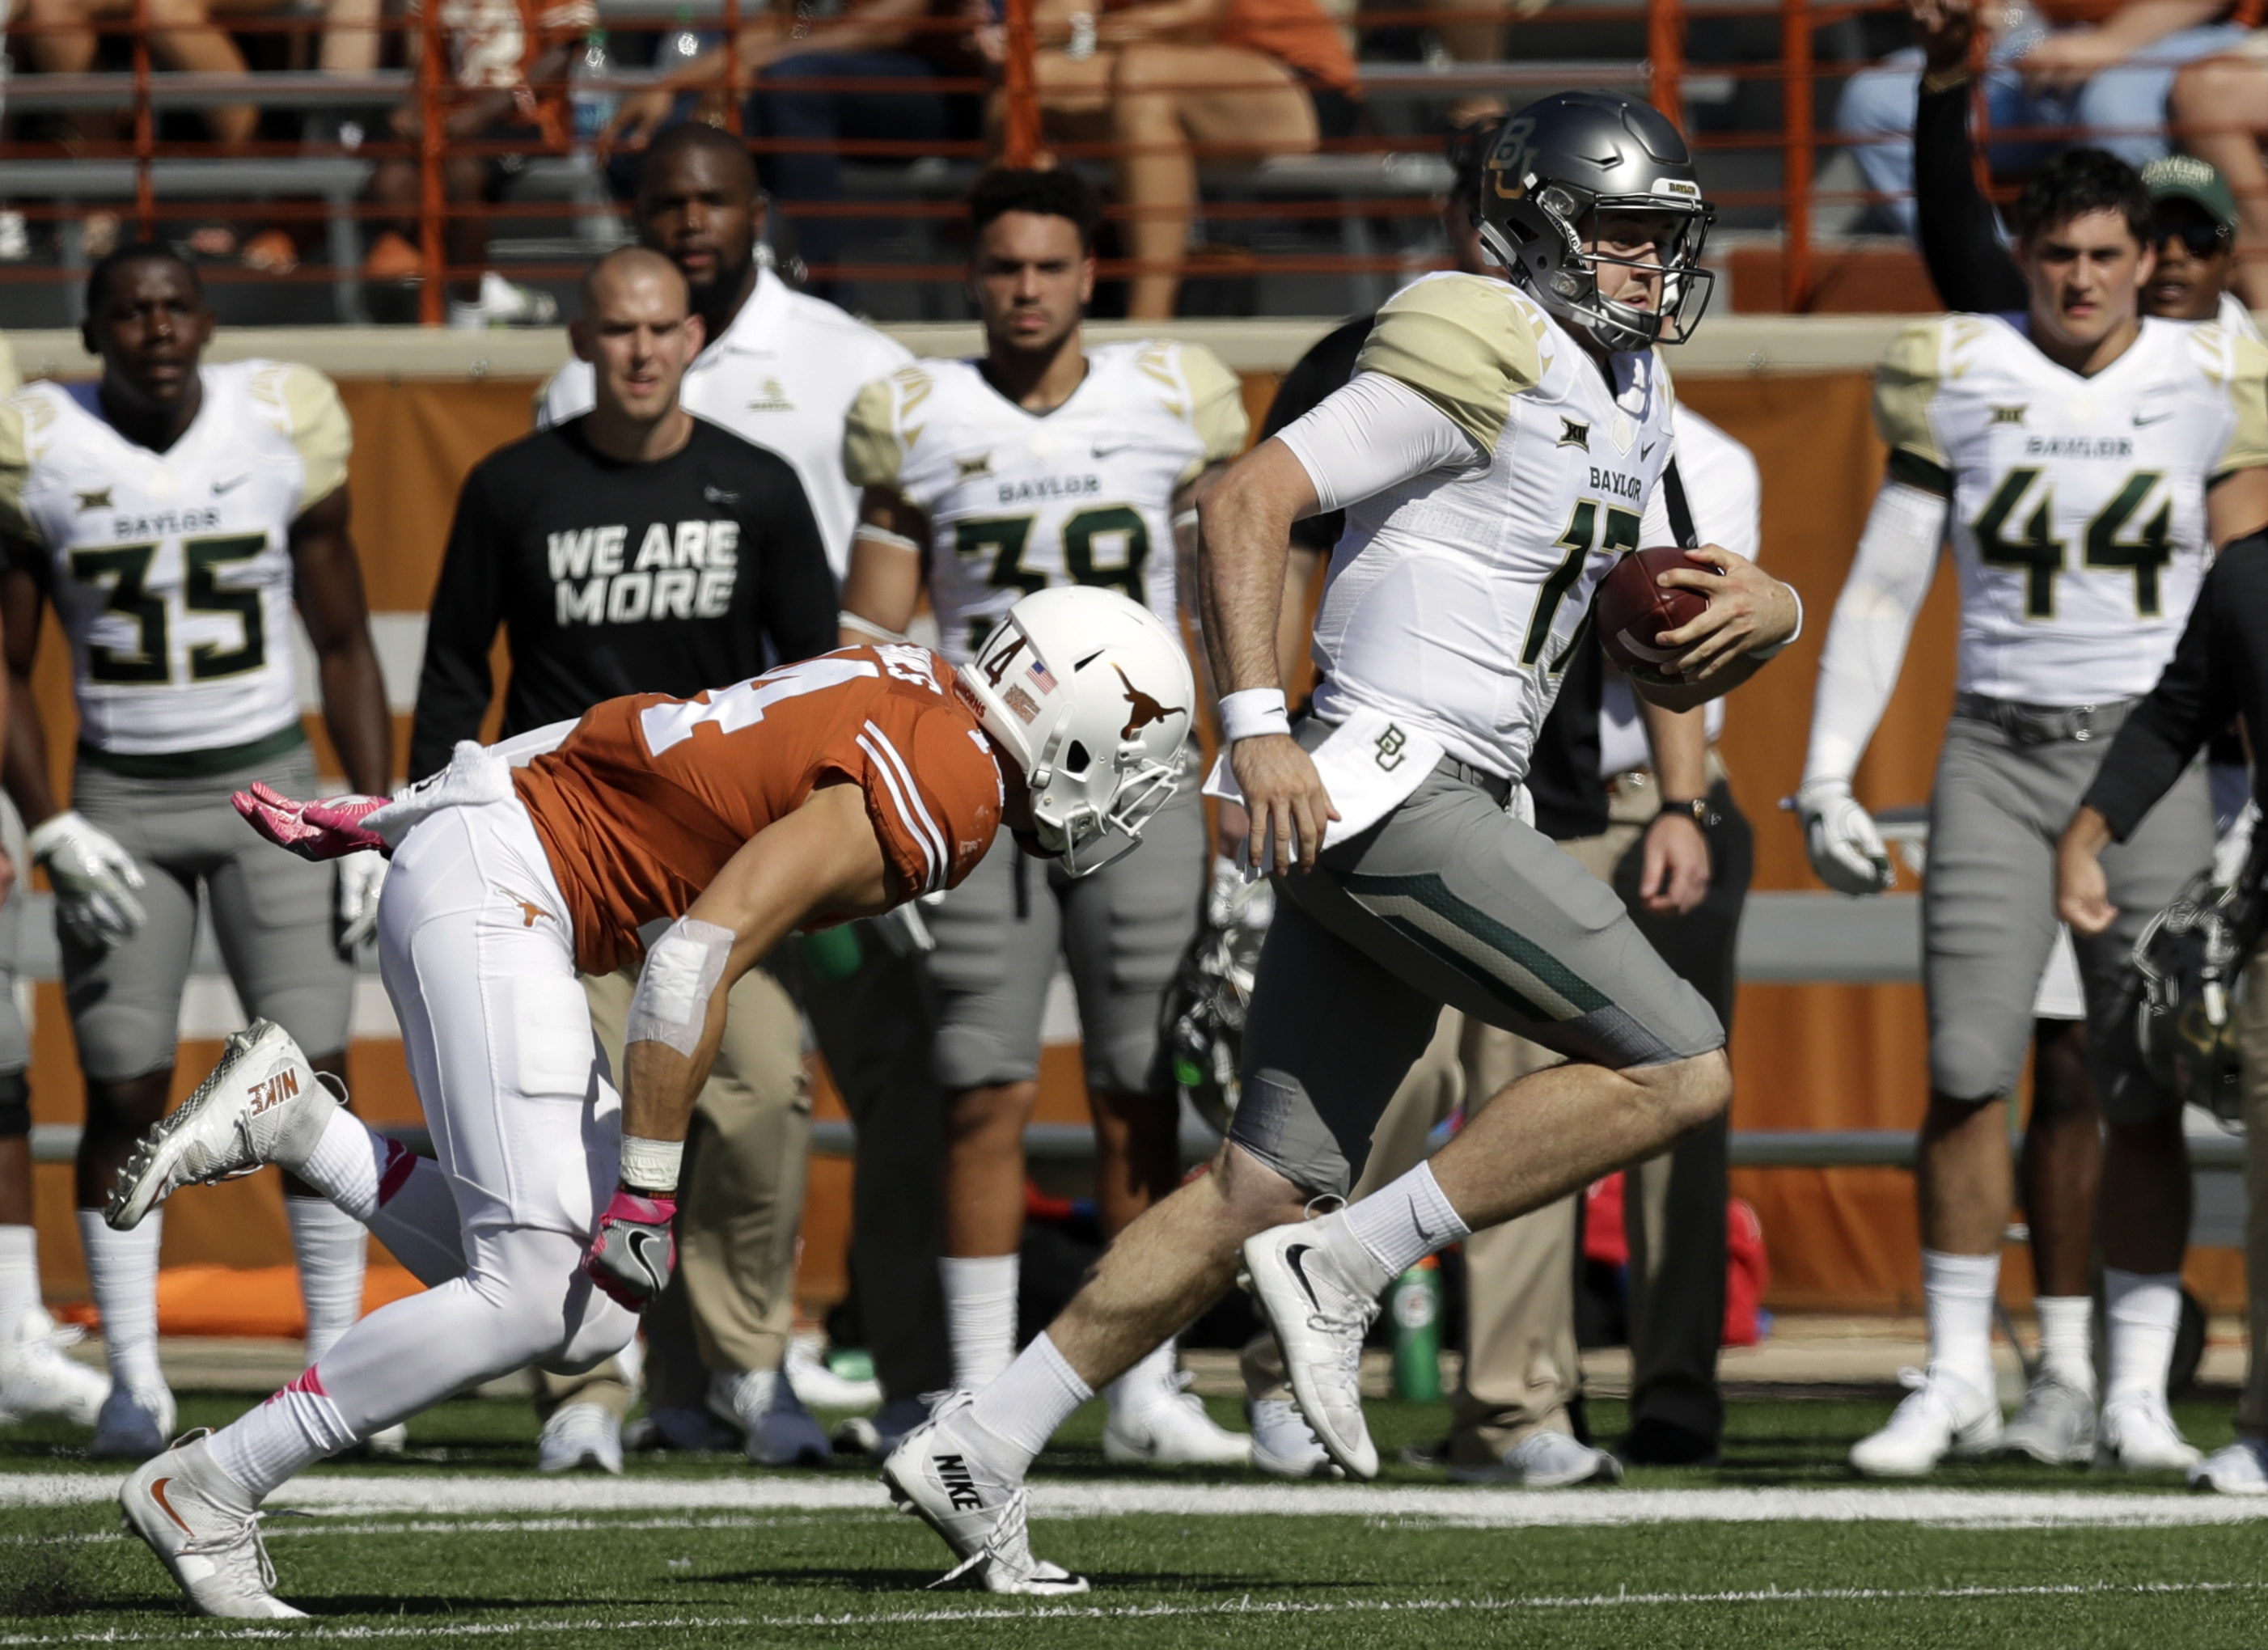 Baylor quarterback Seth Russell (17) scores against Texas on a 50-yard run during the first half on a NCAA college football game, Saturday, Oct. 29, 2016, in Austin, Texas. (AP Photo/Eric Gay)